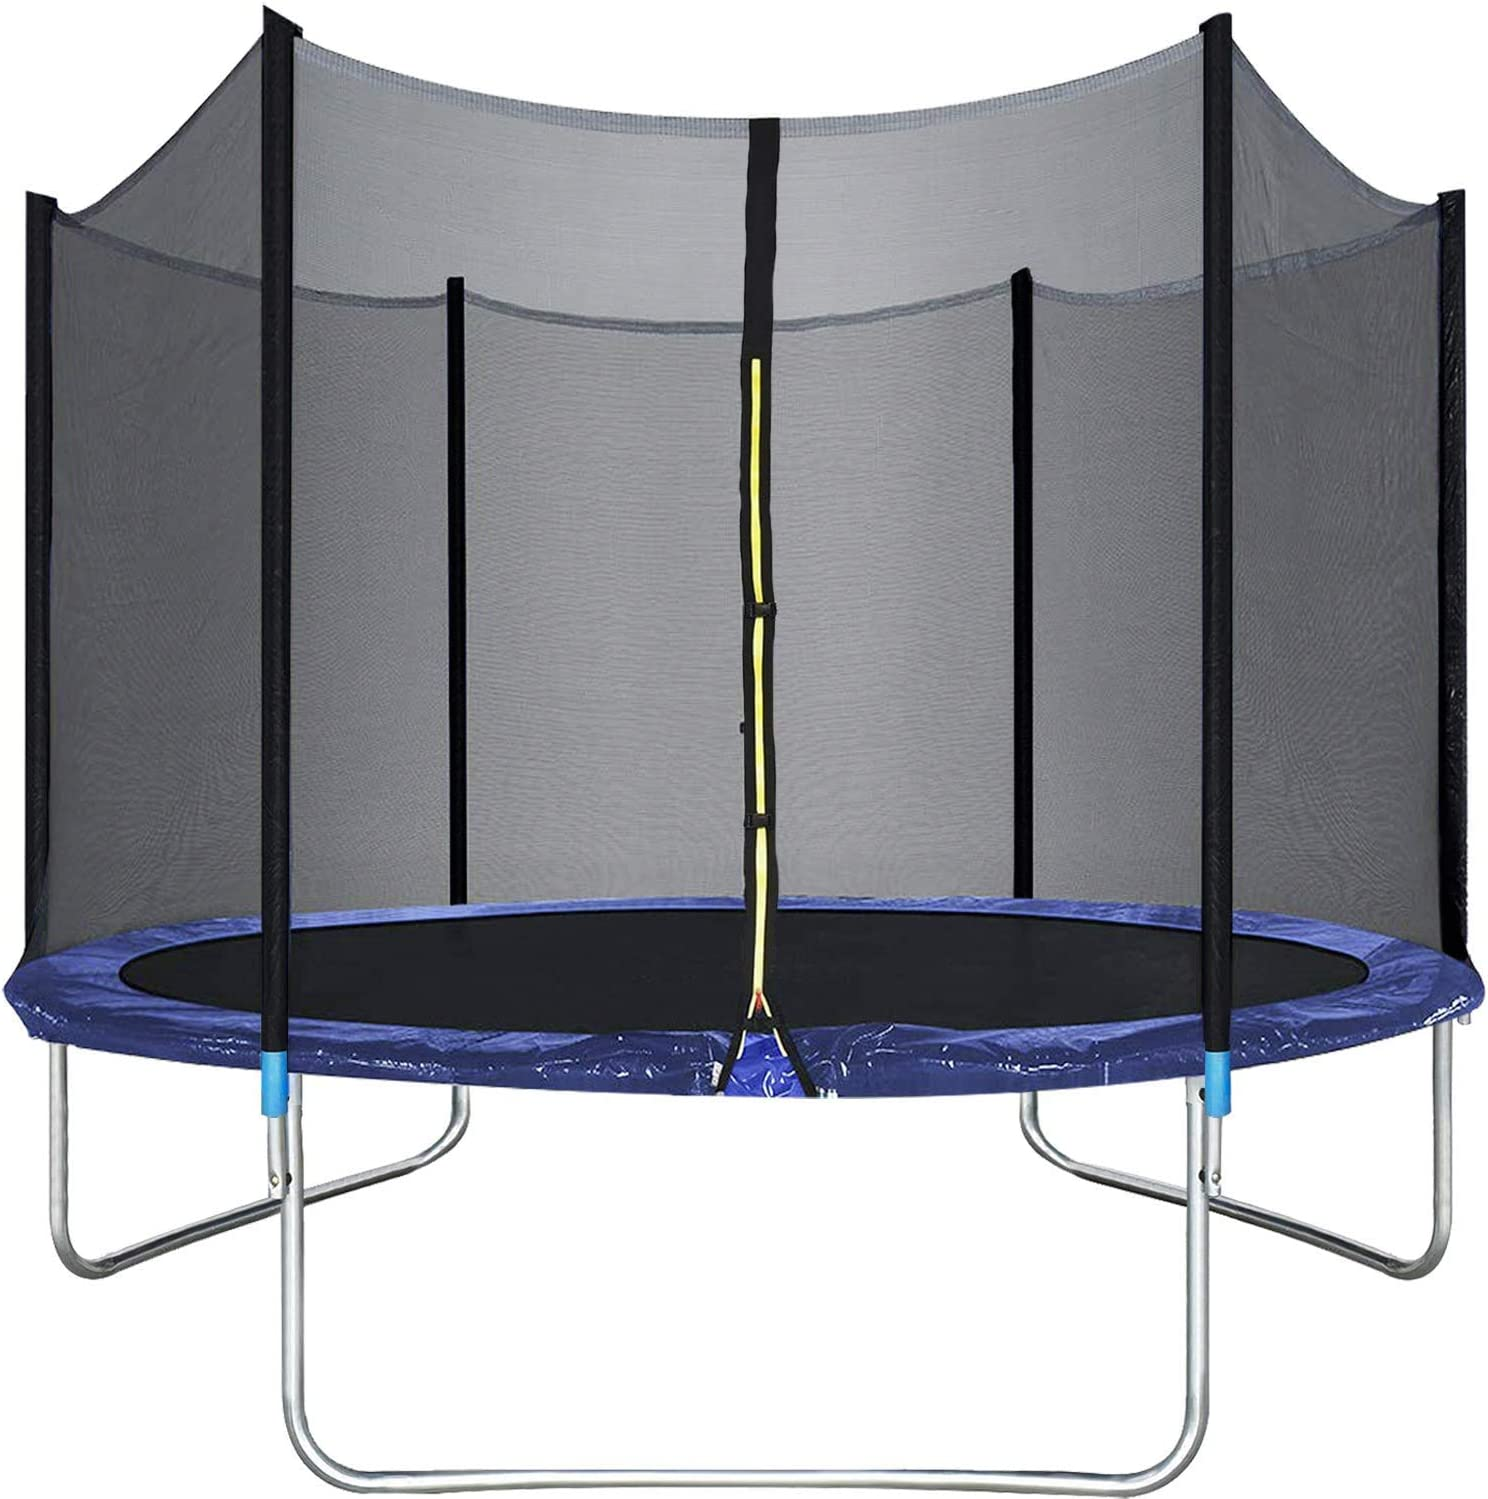 10FT Trampoline with Safety Finally popular brand Enclosure Outd Bounce Net Charlotte Mall Combo Jump